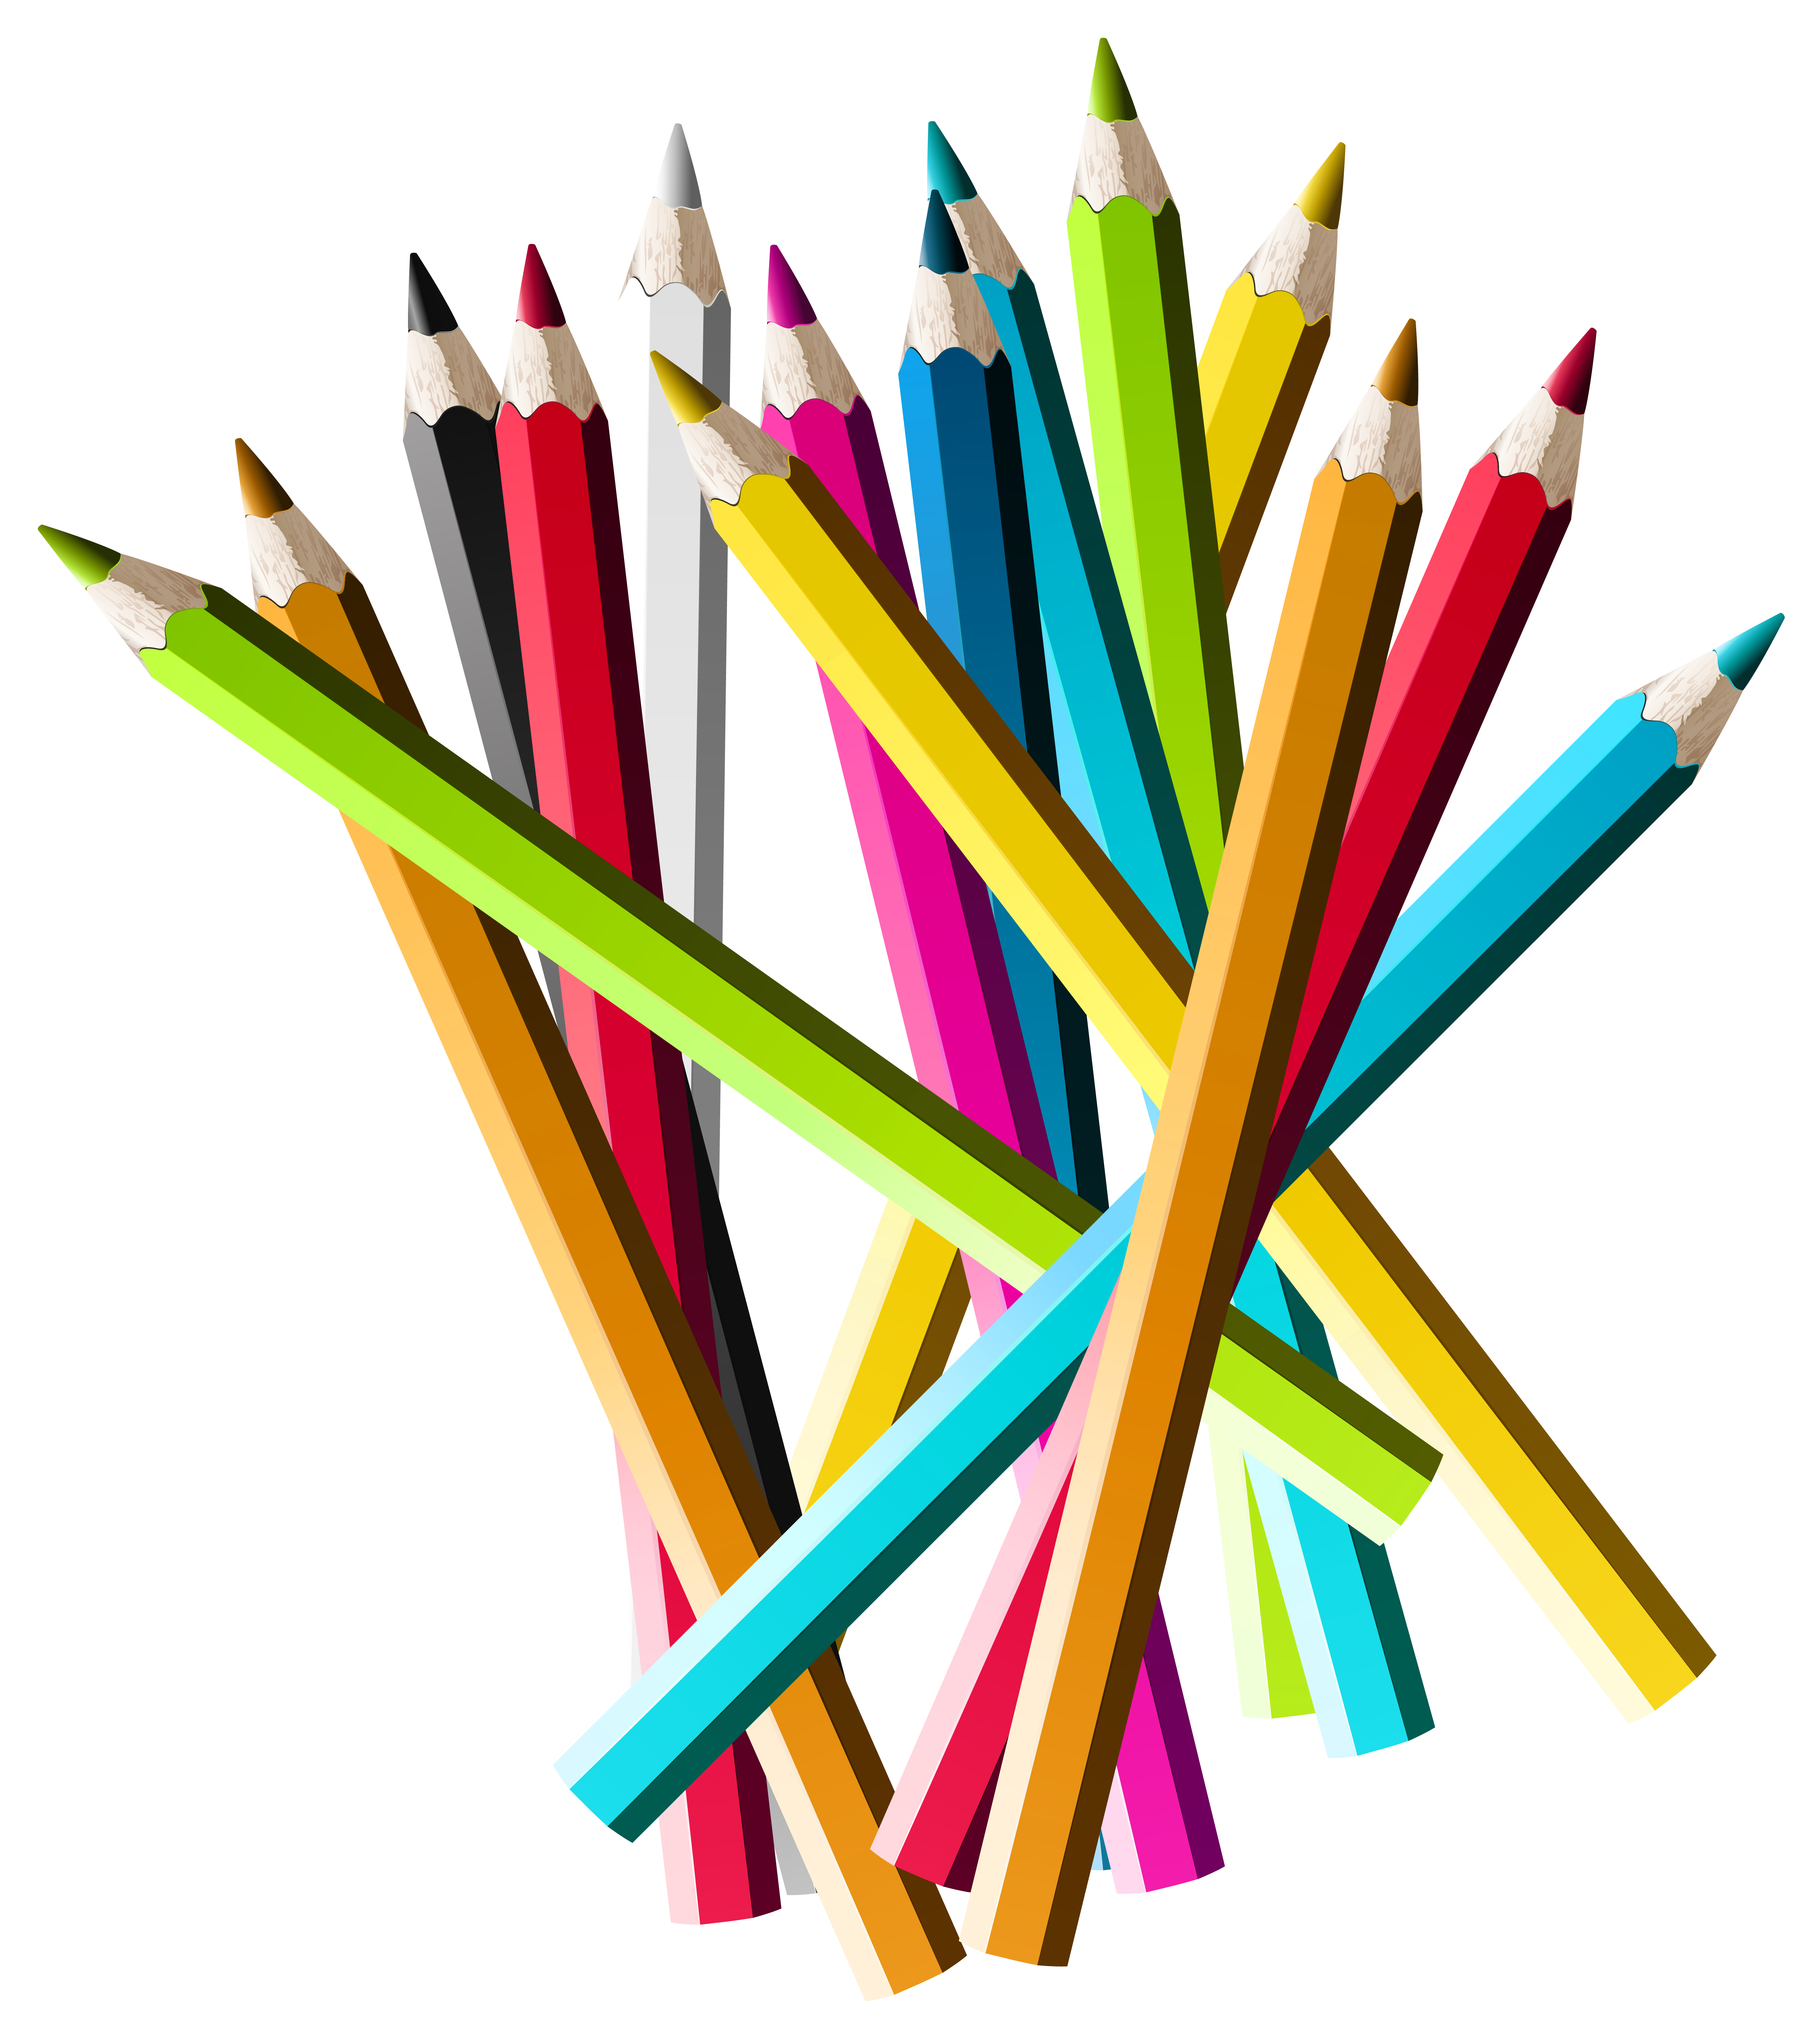 Colorful Pencils Png Clipart Picture Gallery Yopriceville High Quality Images Pencil Png Colored Pencils Pencil Clipart